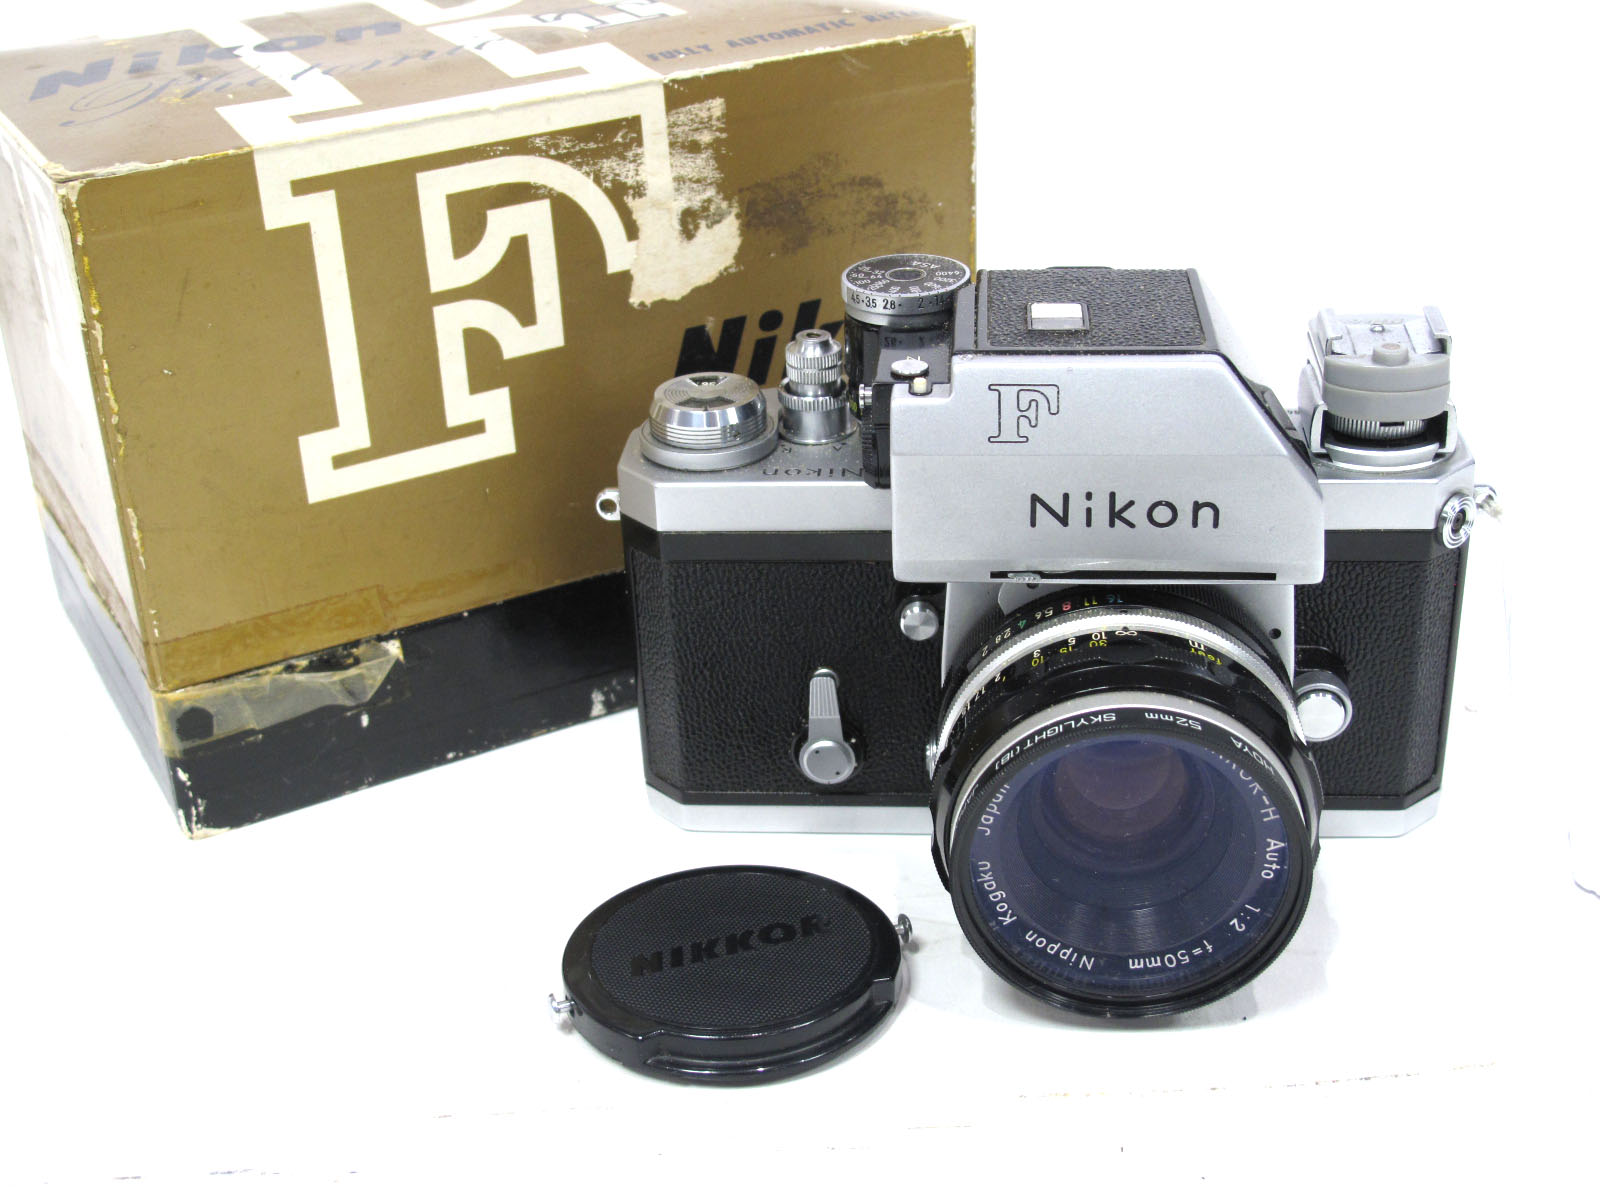 Nikon F 6866981 Camera, with Kogaku Nikkor-H Auto 50mm lens, all boxed.